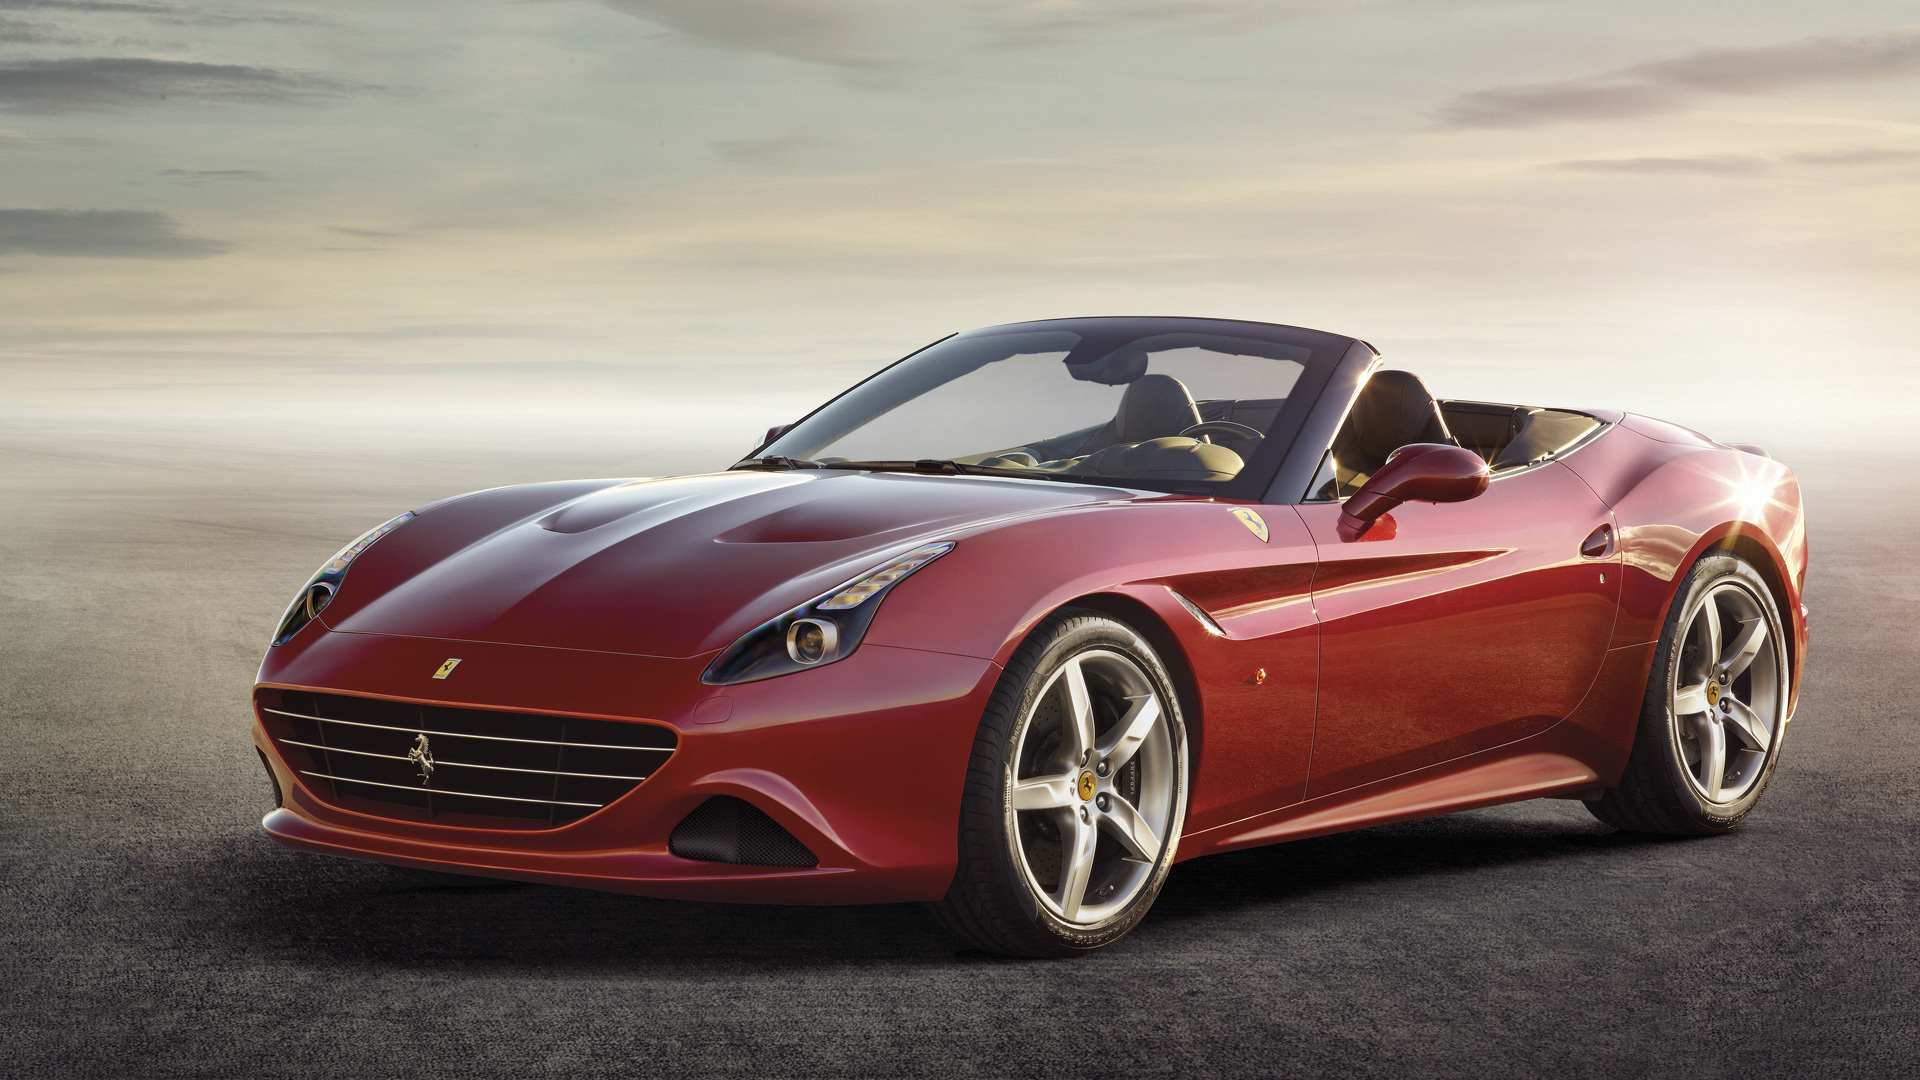 Ferrari California T >> Ferrari California T News And Reviews Motor1 Com